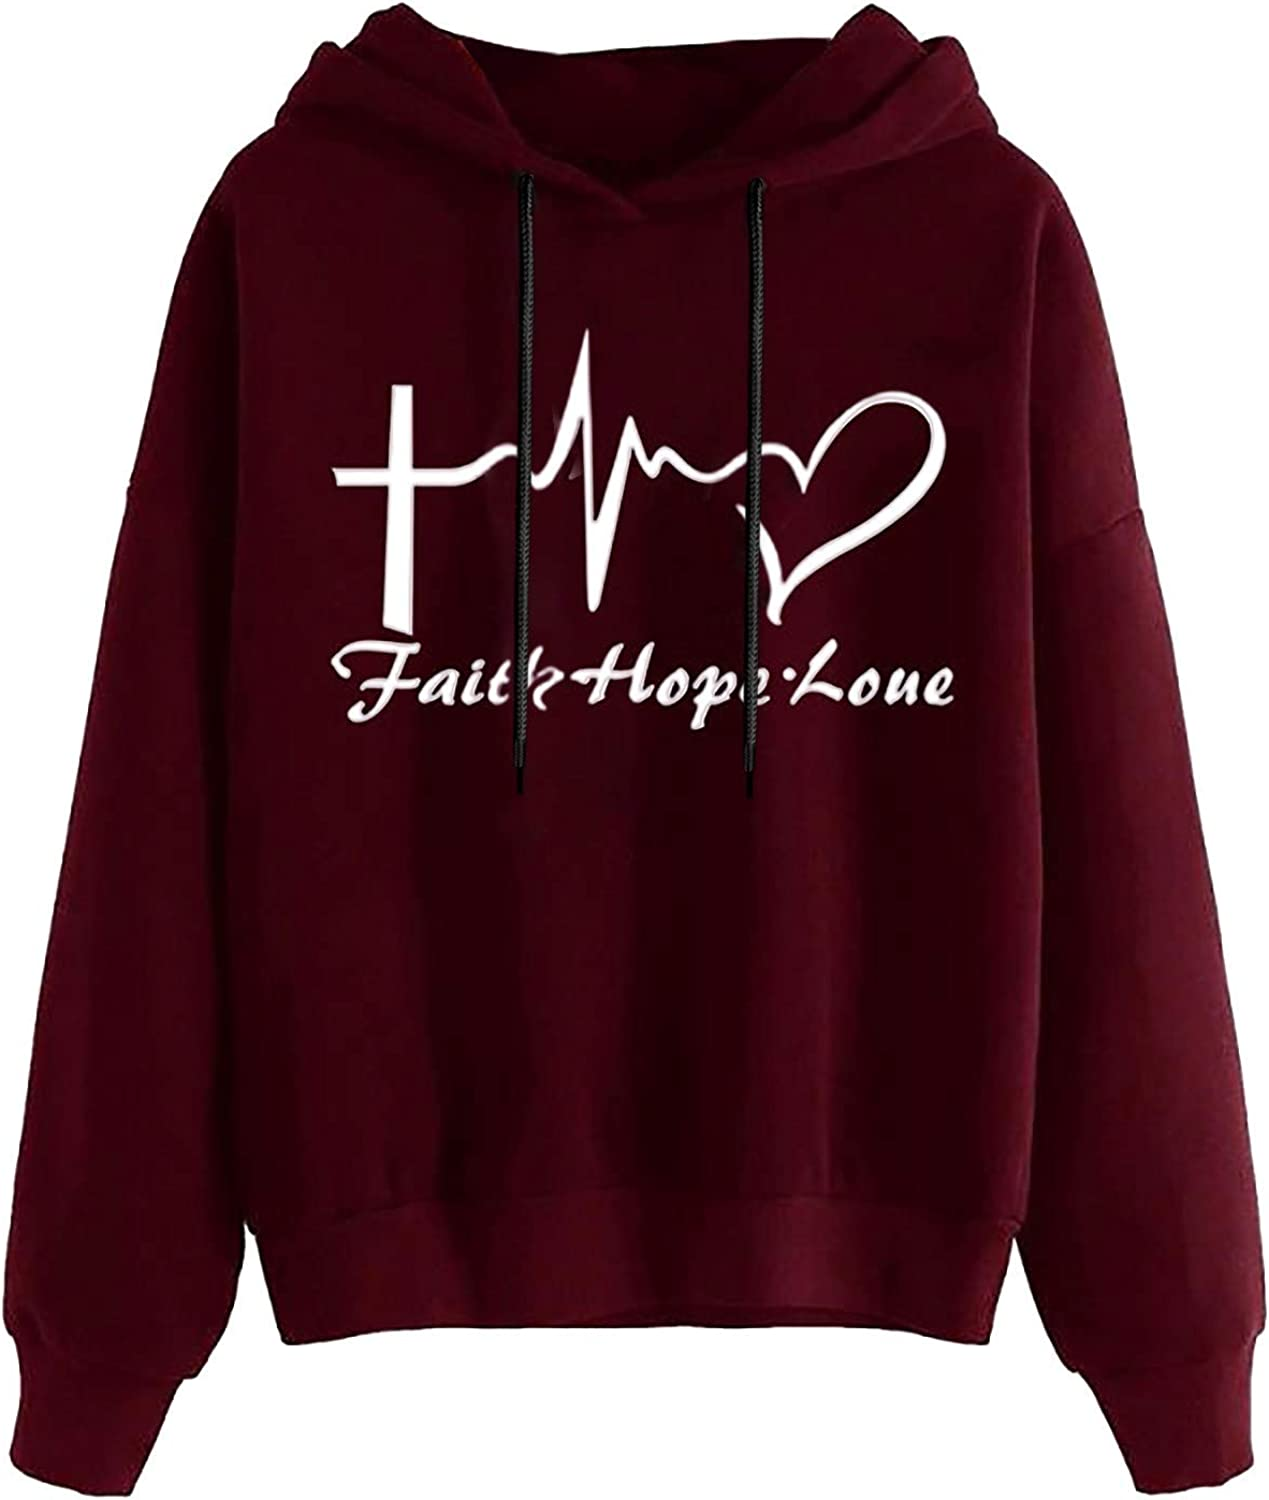 Sweatshirts for Women, Womens Long Sleeve Cute Graphic Hoodie and Sweatshirt Crewneck Loose Casual Pullover Tops